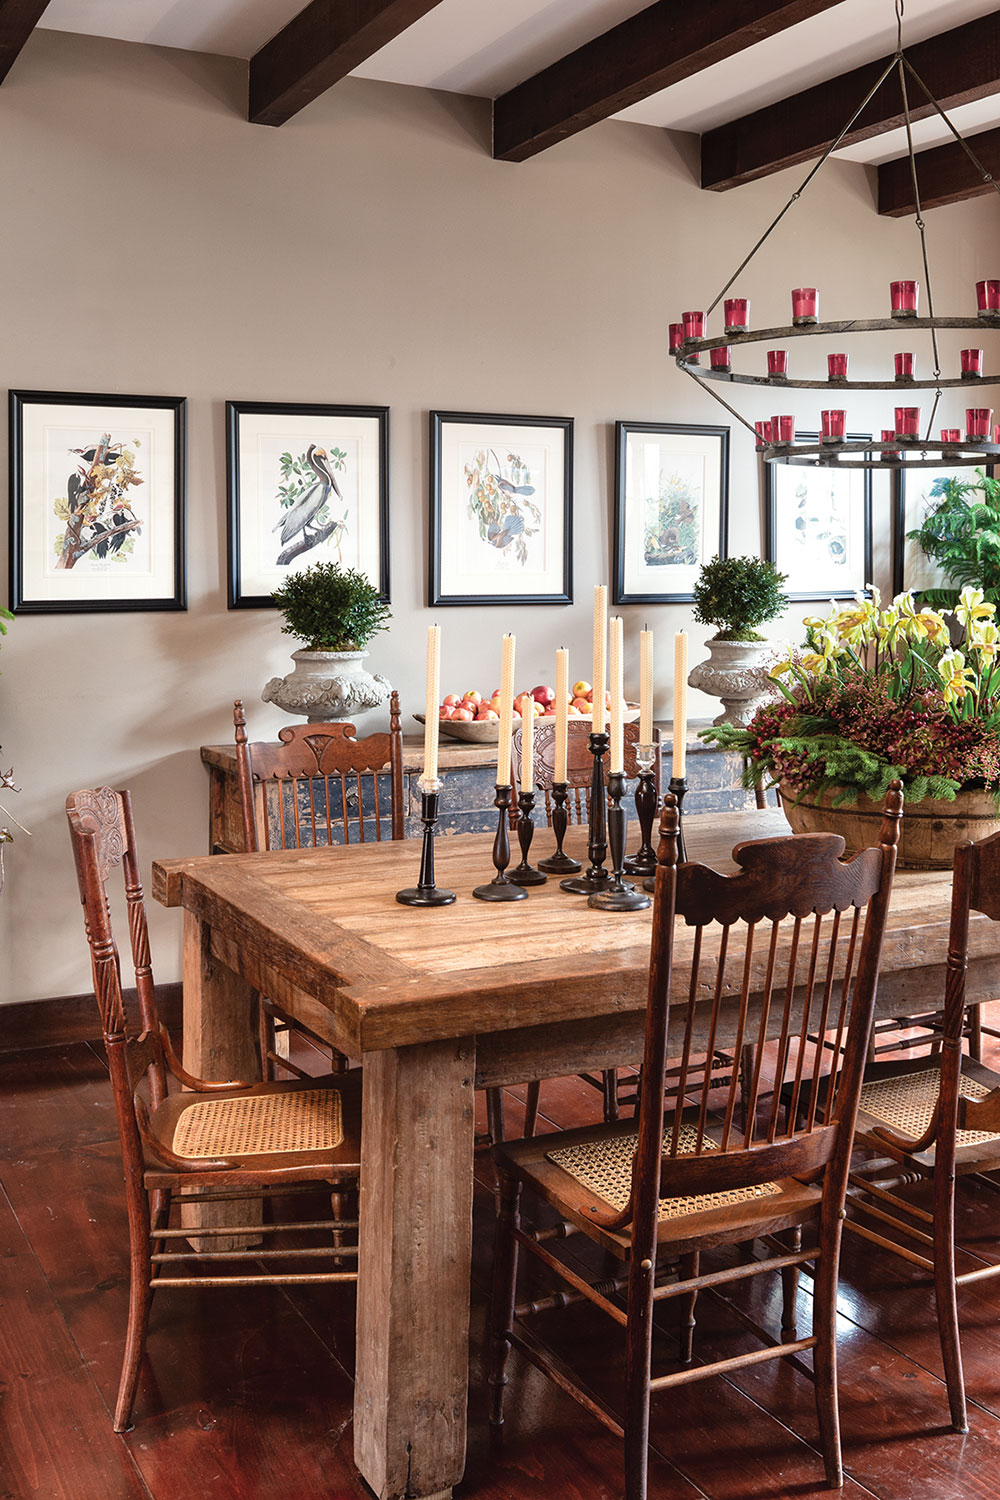 Dining room with exposed beams, a rustic heavy wood dining table, antique chairs, and a rustic-modern candle metal chandelier with red glass votives. Six Audubon prints are hung in a single row on the main wall.